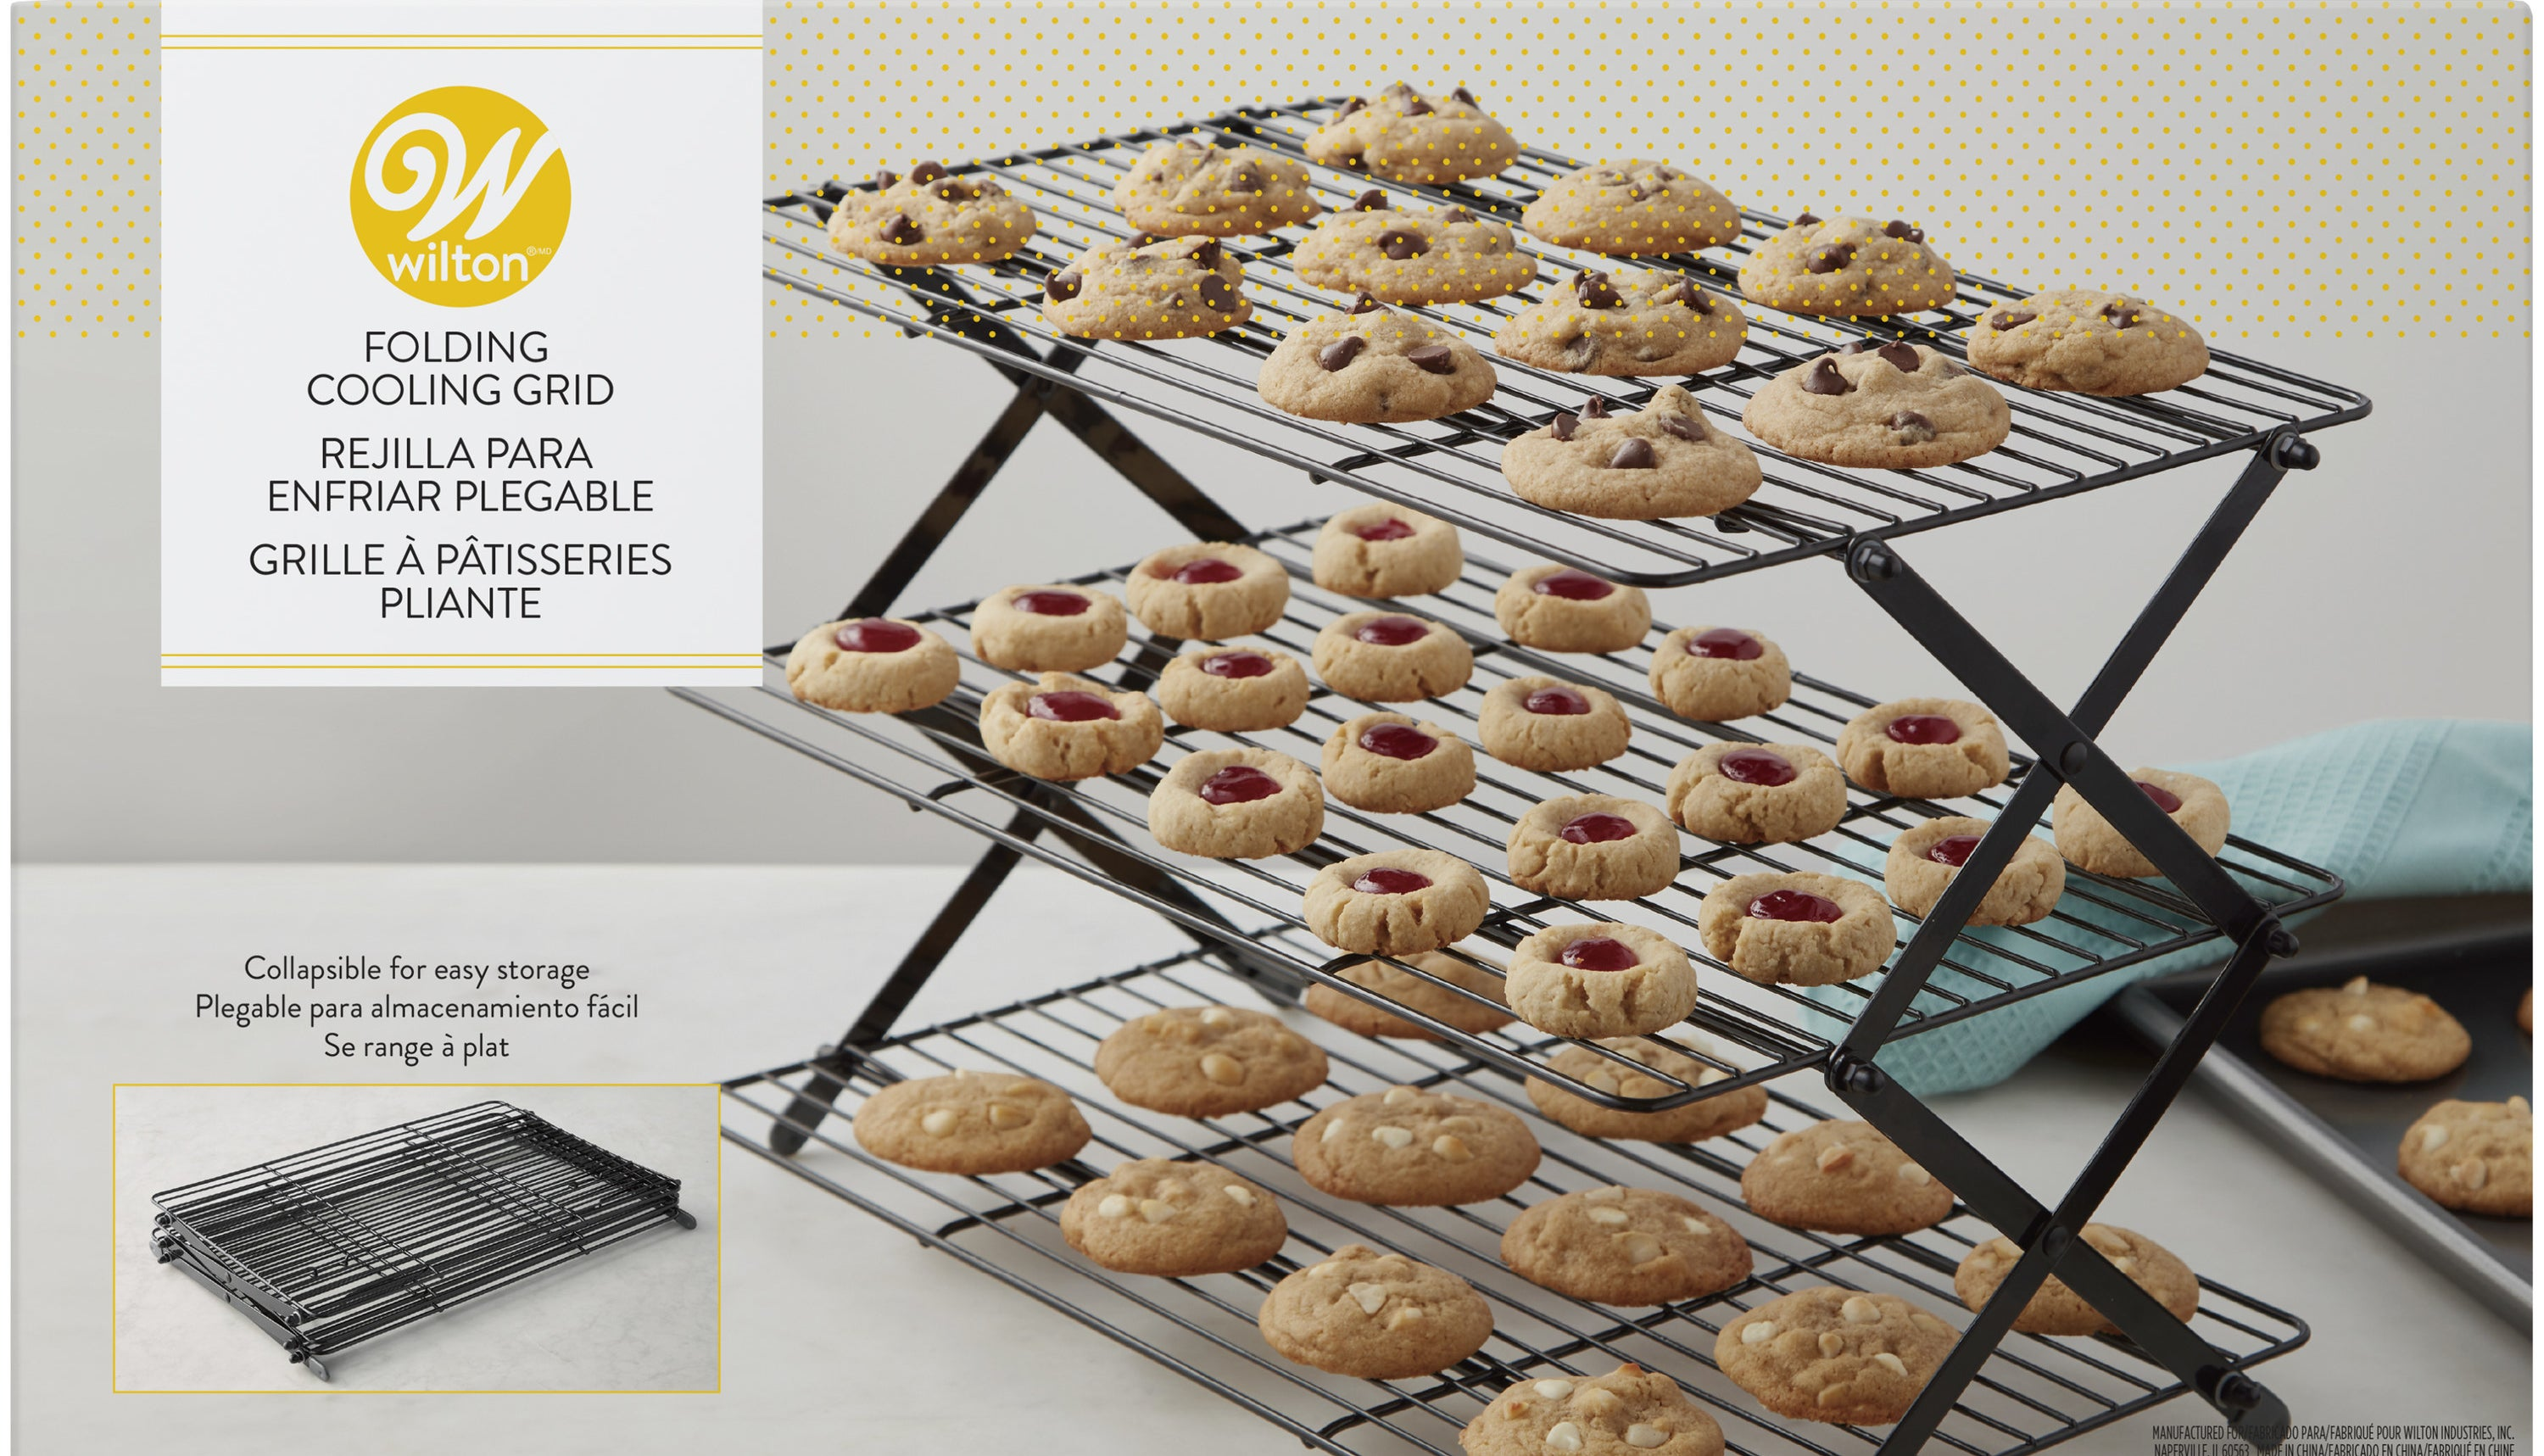 The three-tier metal cooling rack